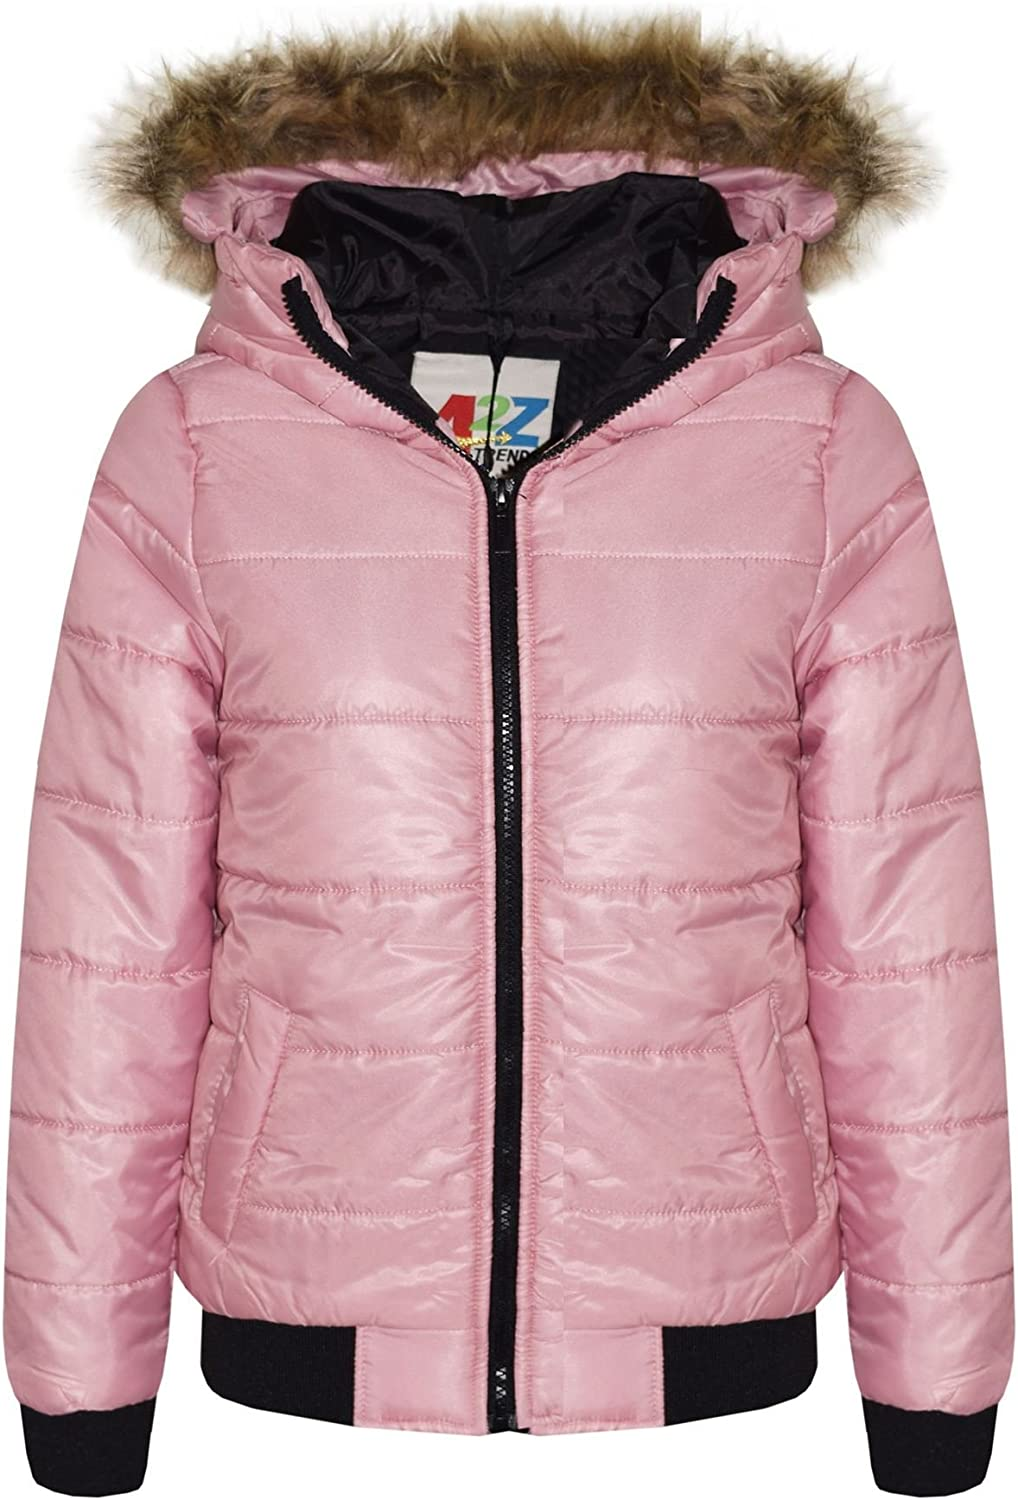 A2Z 4 Kids/® Kids Girls Jacket Faux Fur Detachable Hood Puffer Hooded Padded Quilted Warm Thick Coats New Age 5 6 7 8 9 10 11 12 13 Years